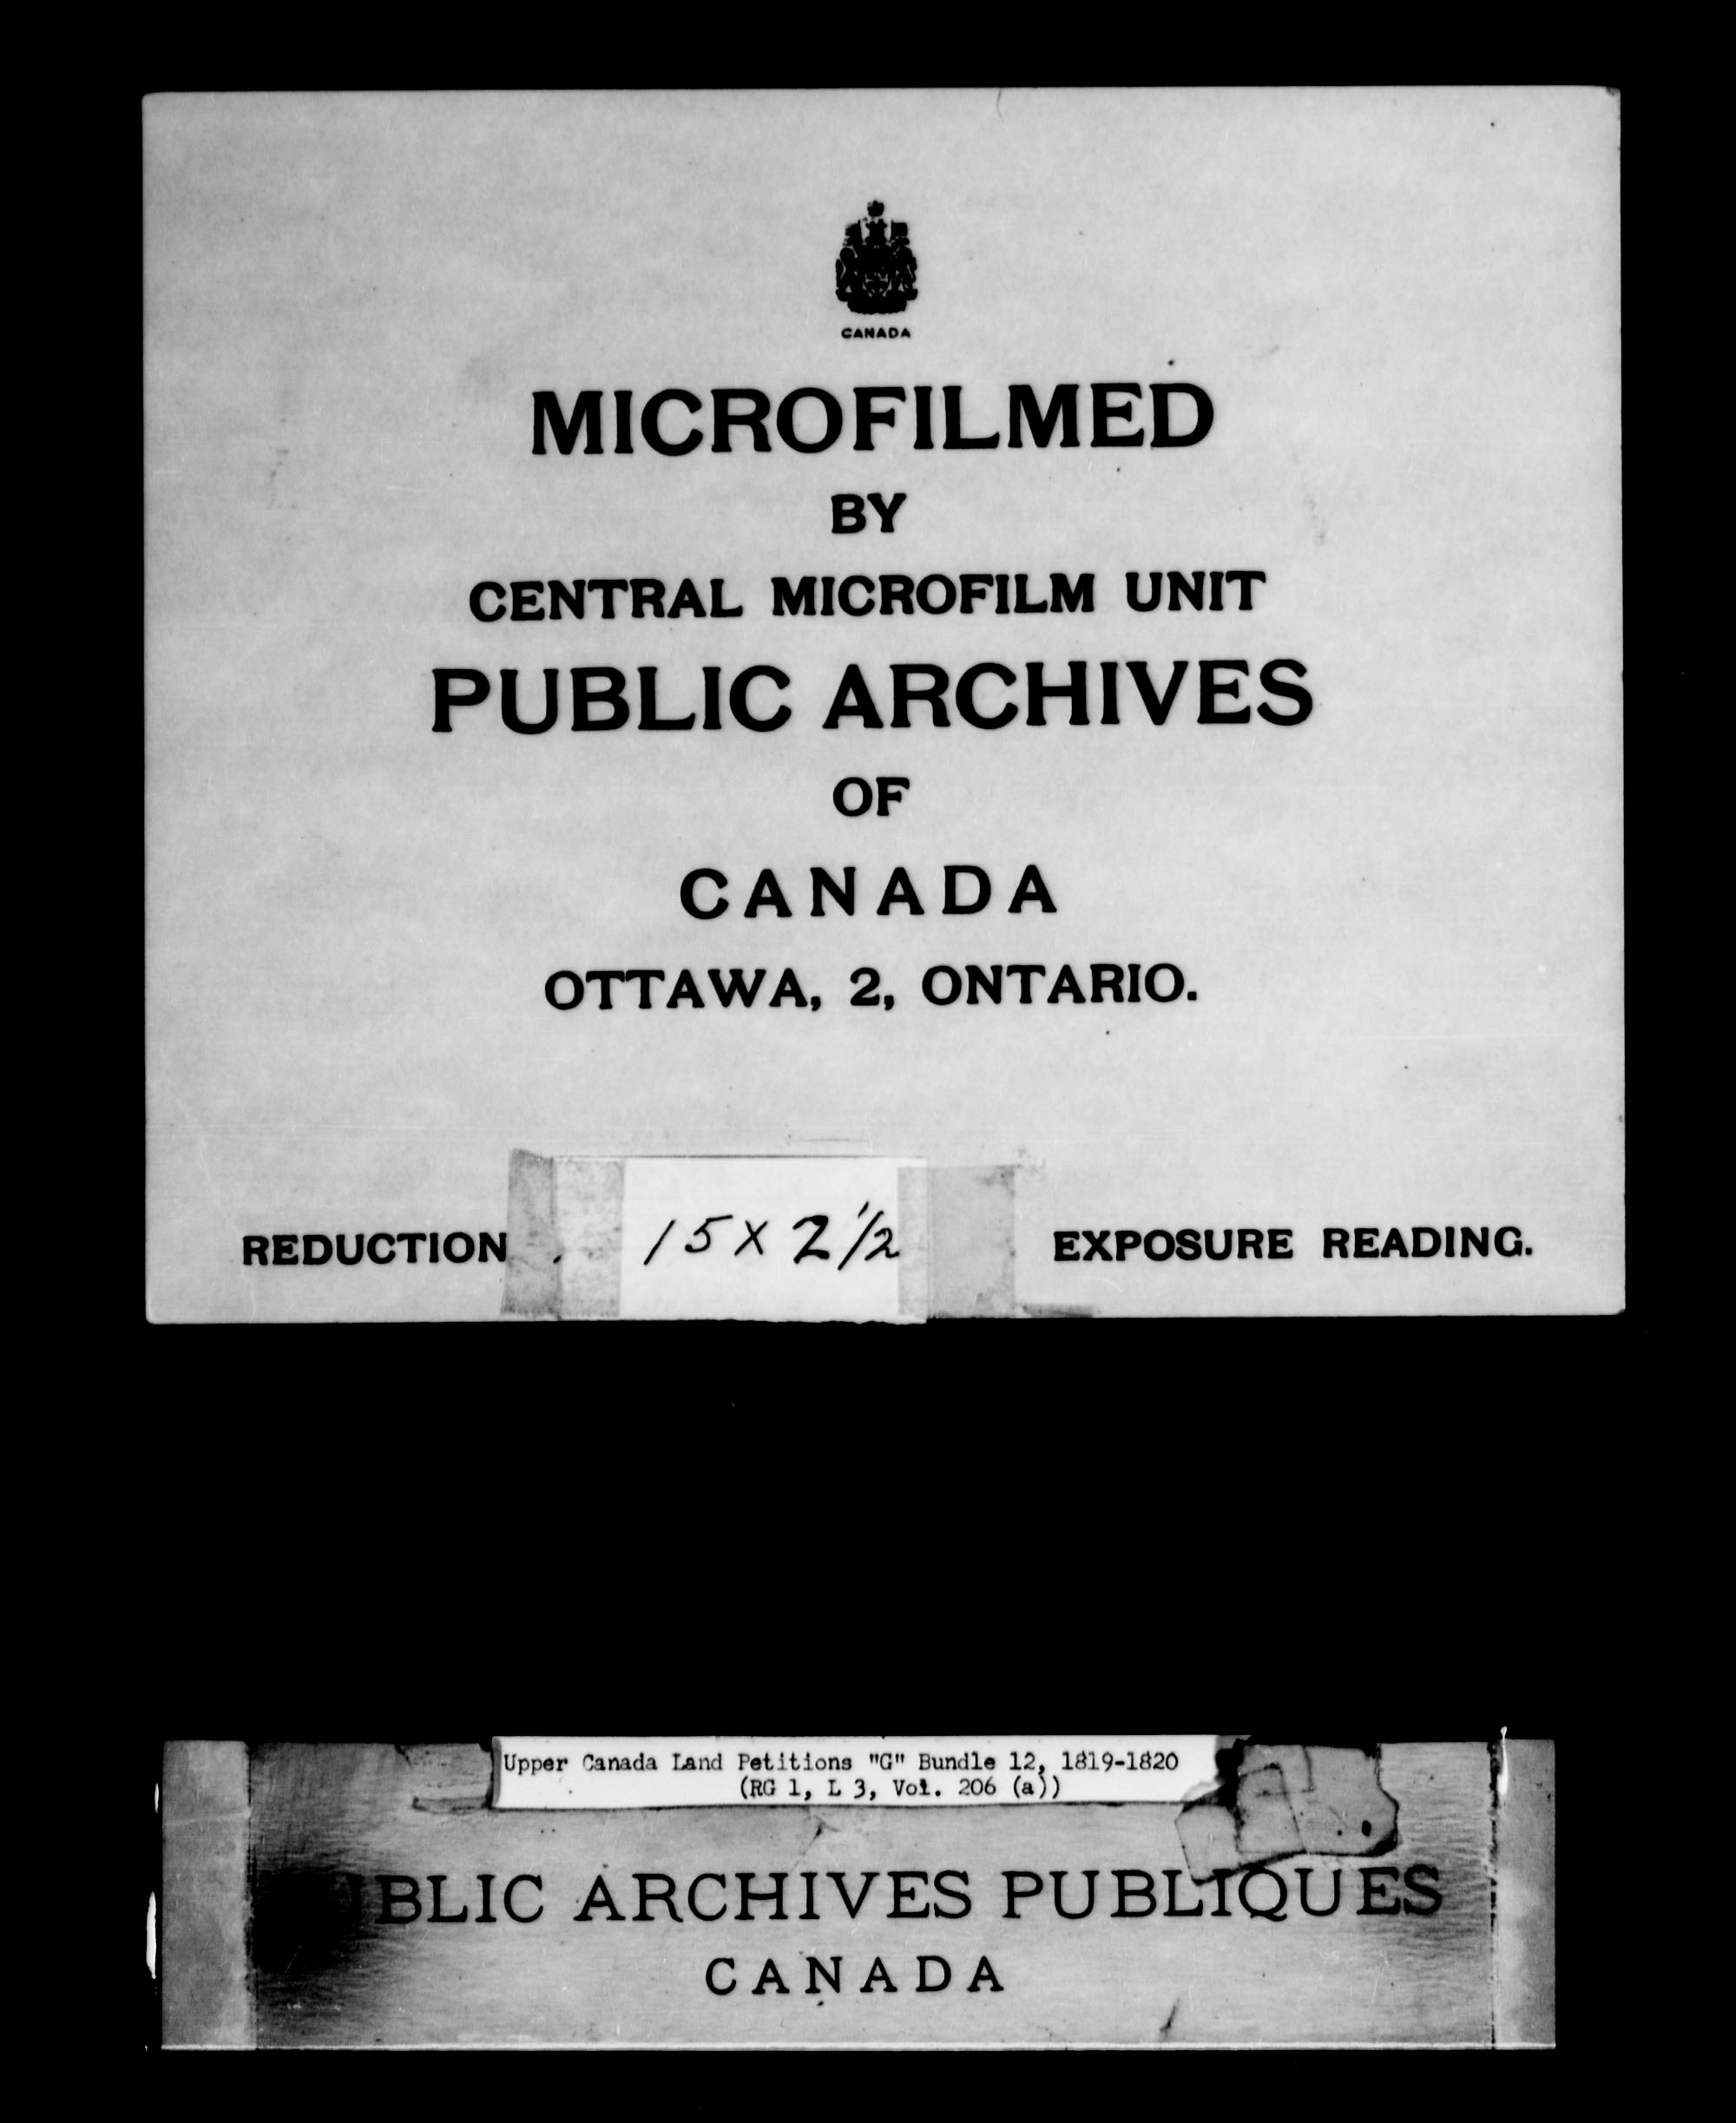 Title: Upper Canada Land Petitions (1763-1865) - Mikan Number: 205131 - Microform: c-2031